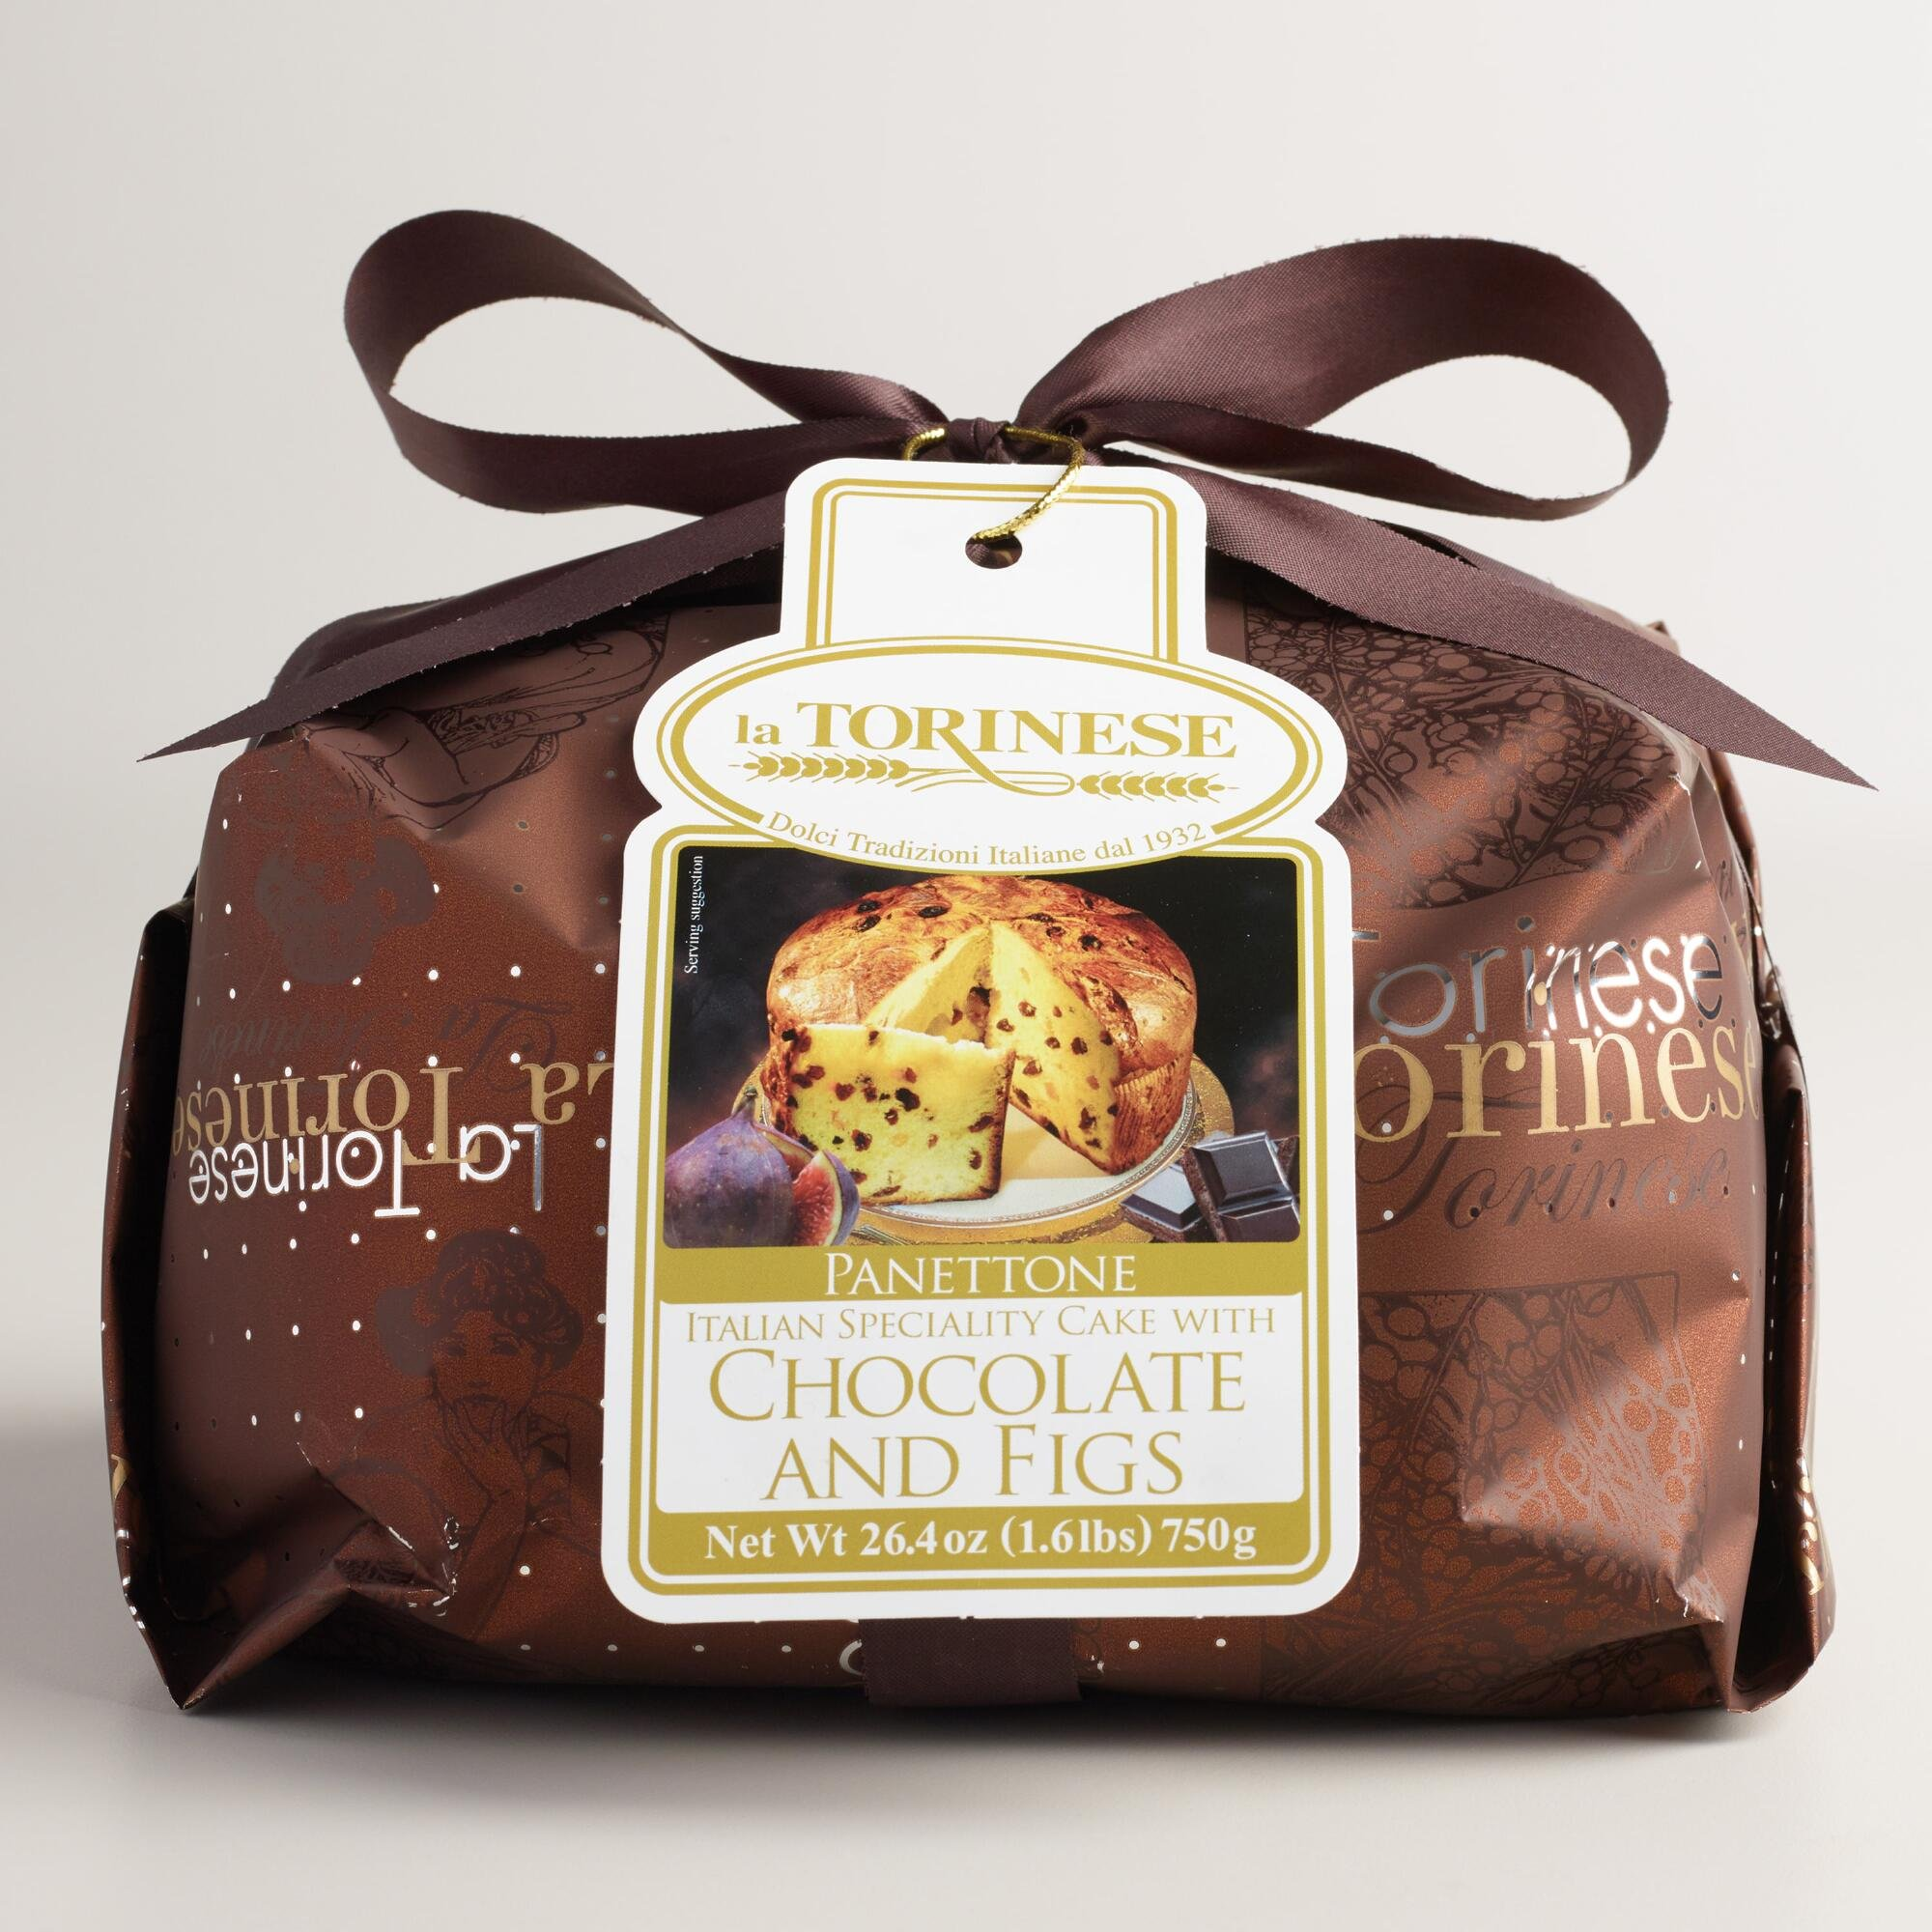 La Torinese Chocolate and Fig Panettone, 26.4-ounce (750g)